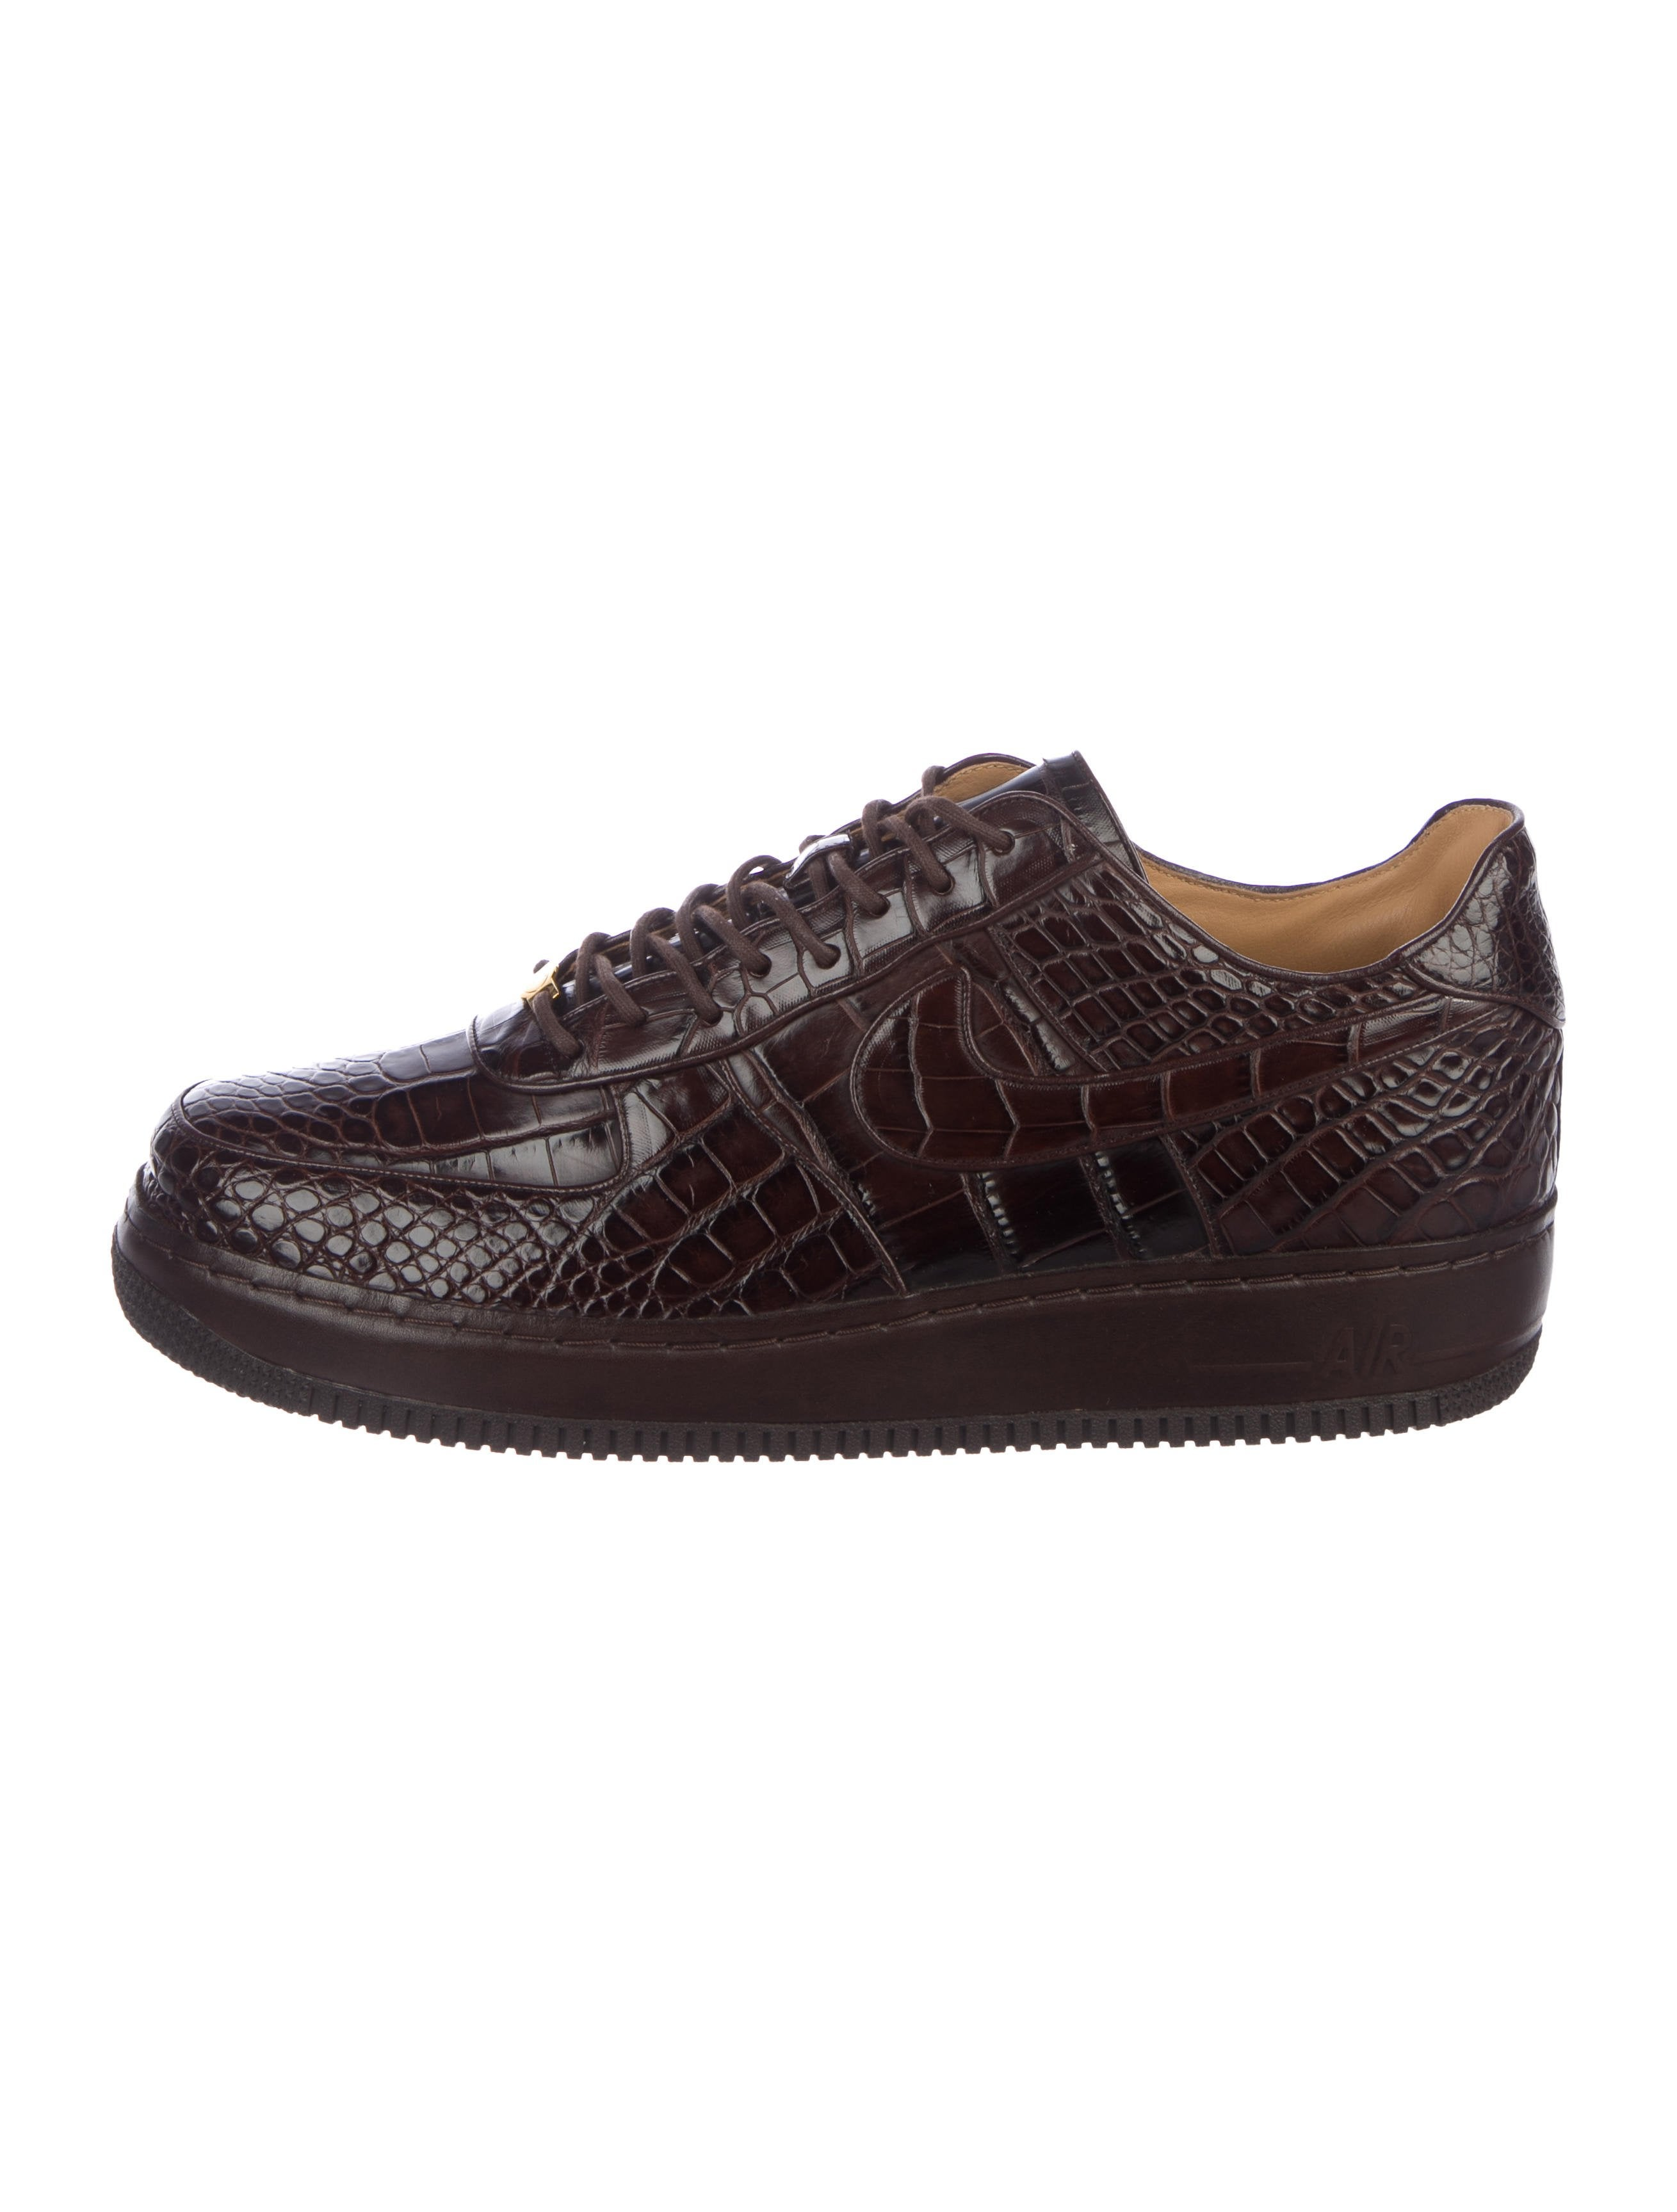 Nike Crocodile Air Force 1 Low Lux 25th Anniversary Sneakers